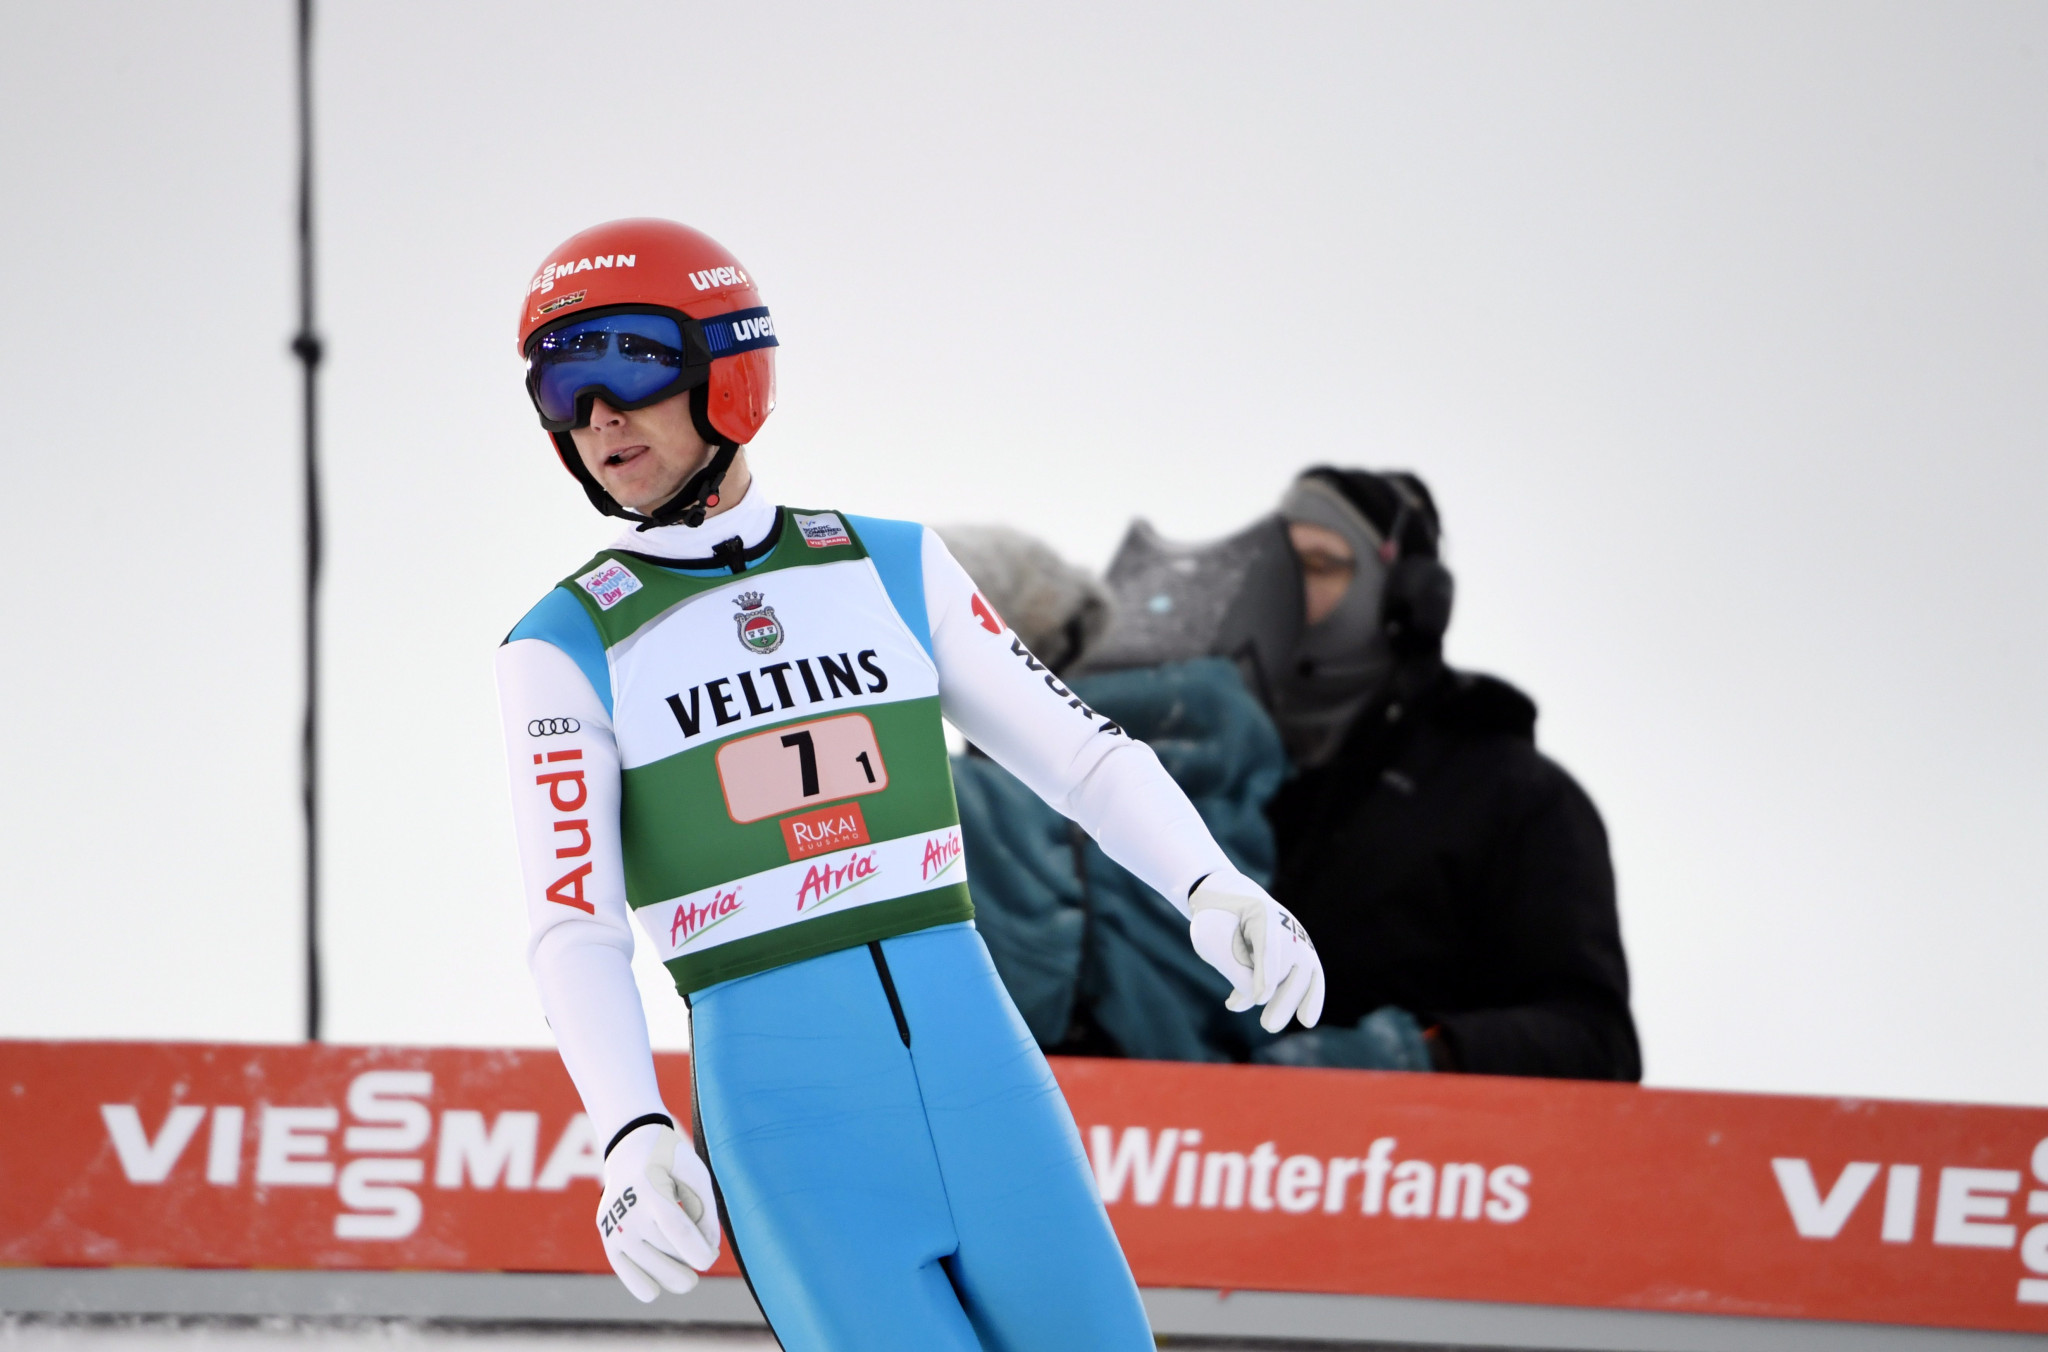 Geiger claims maiden Nordic Combined World Cup win in Val di Fiemme